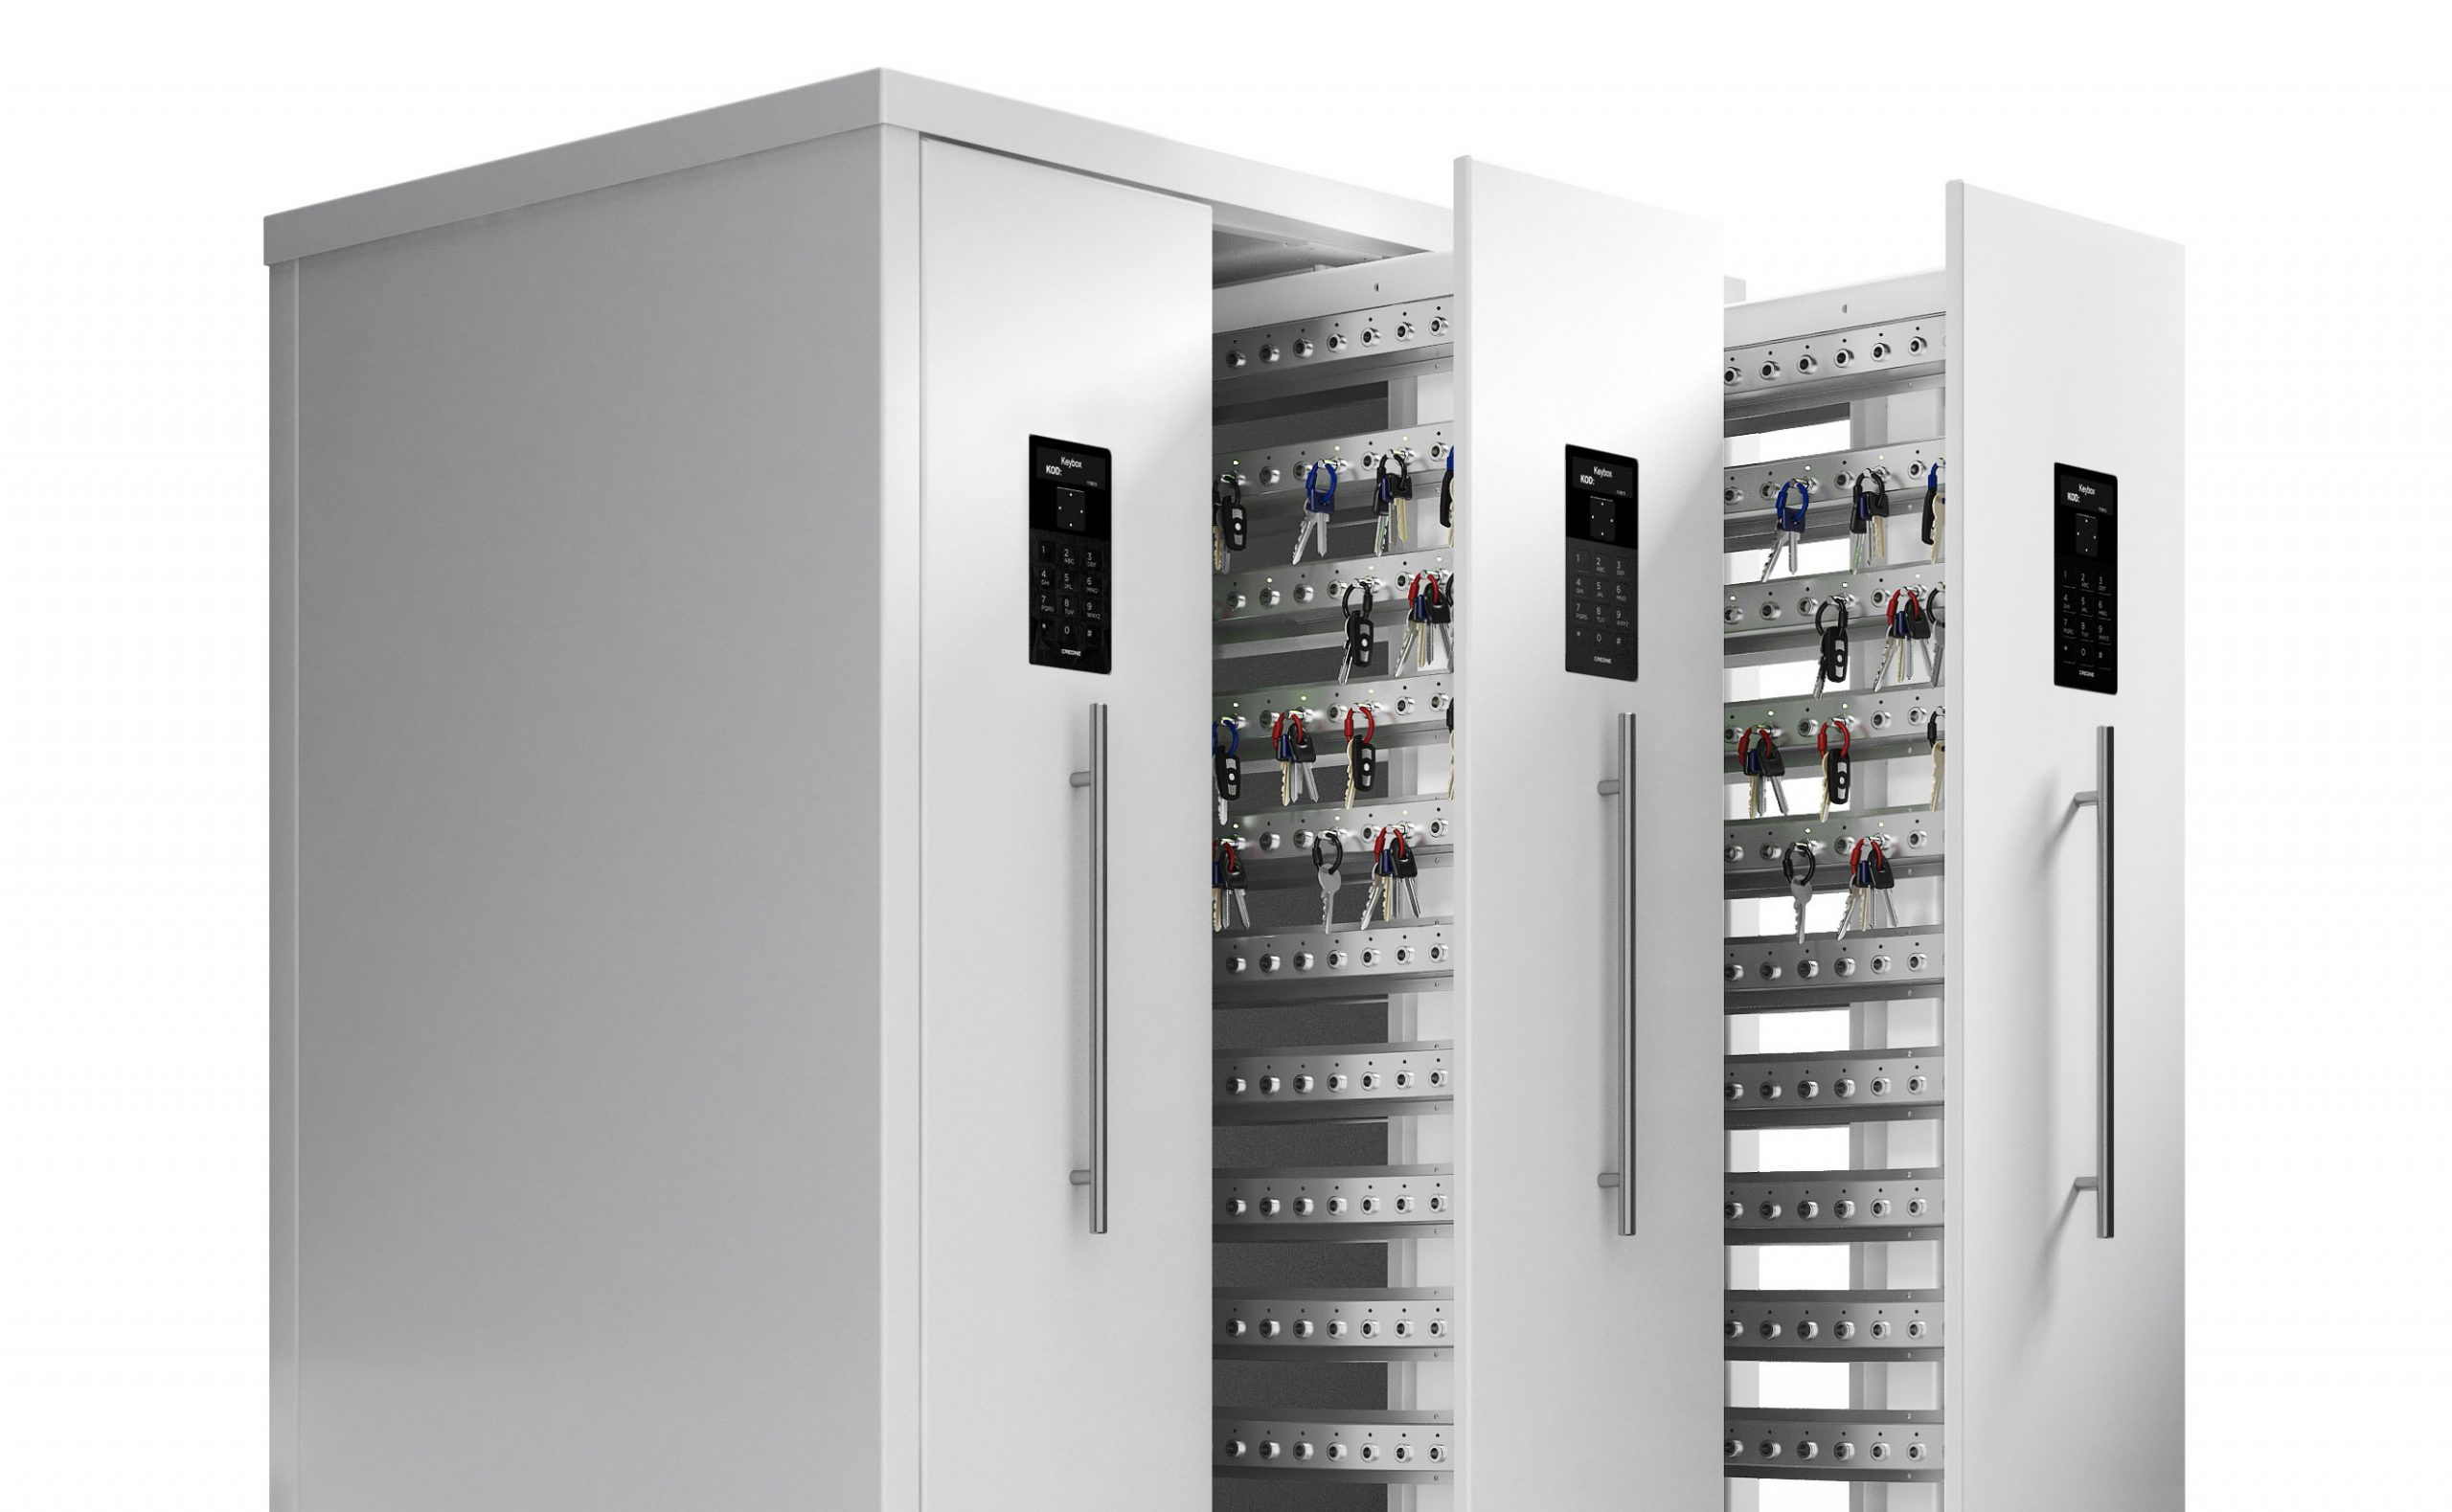 KeyBox smart key cabinet 9600 SC with open doors, used for key management